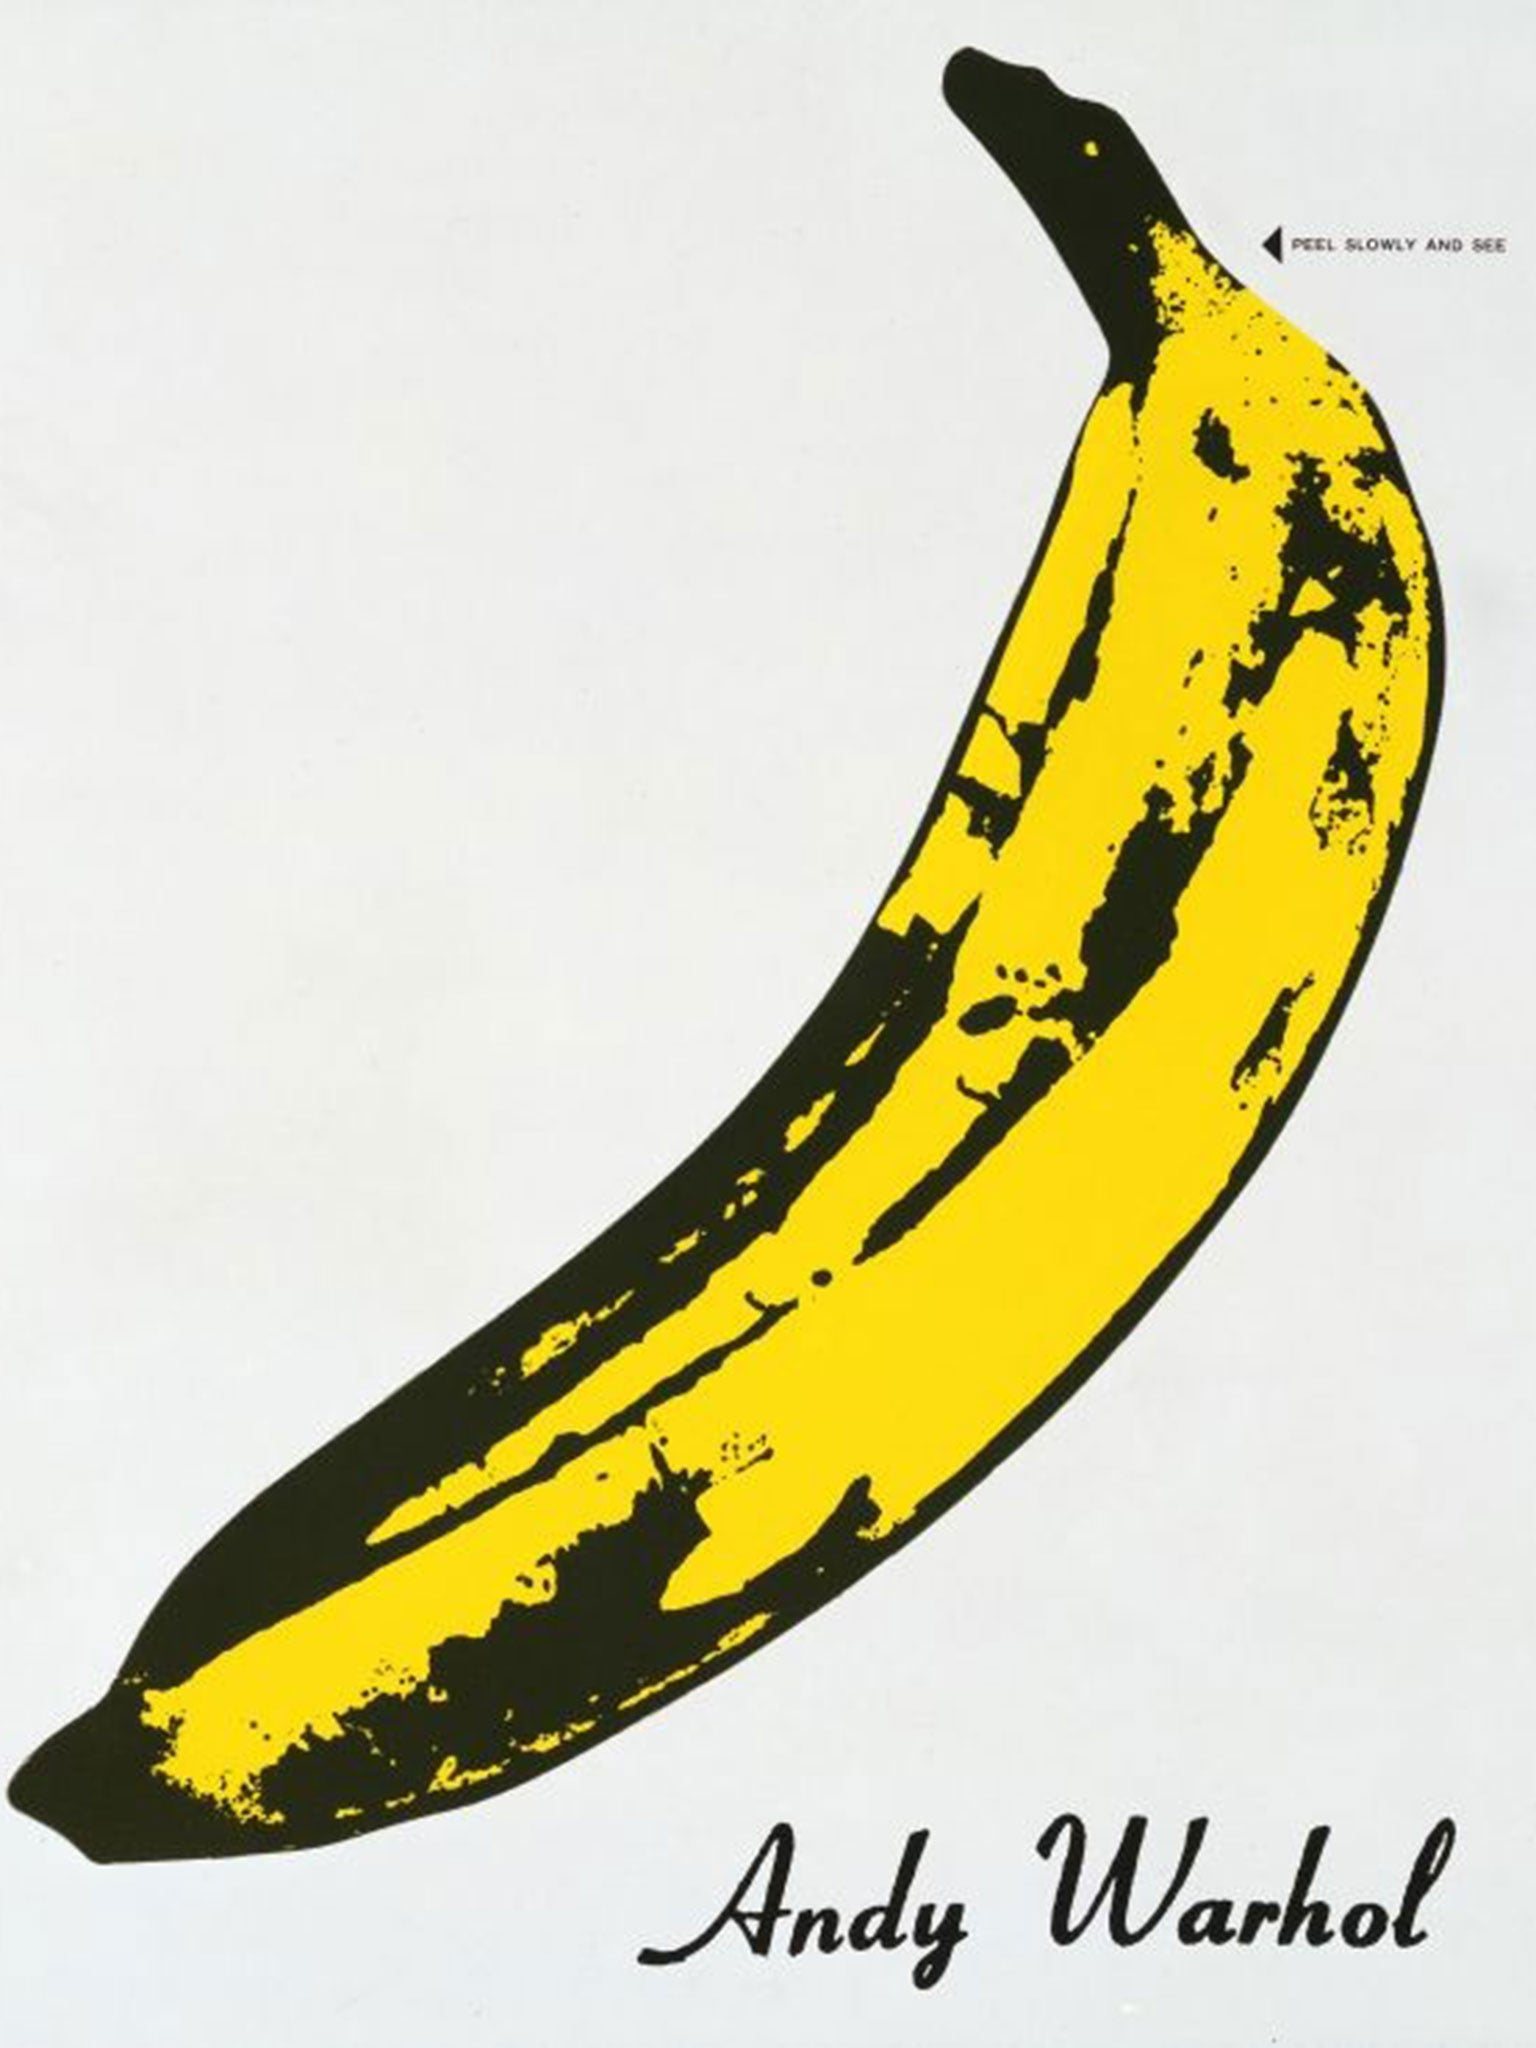 Andy Warhol and Damien Hirst dealers investigated as buyers left